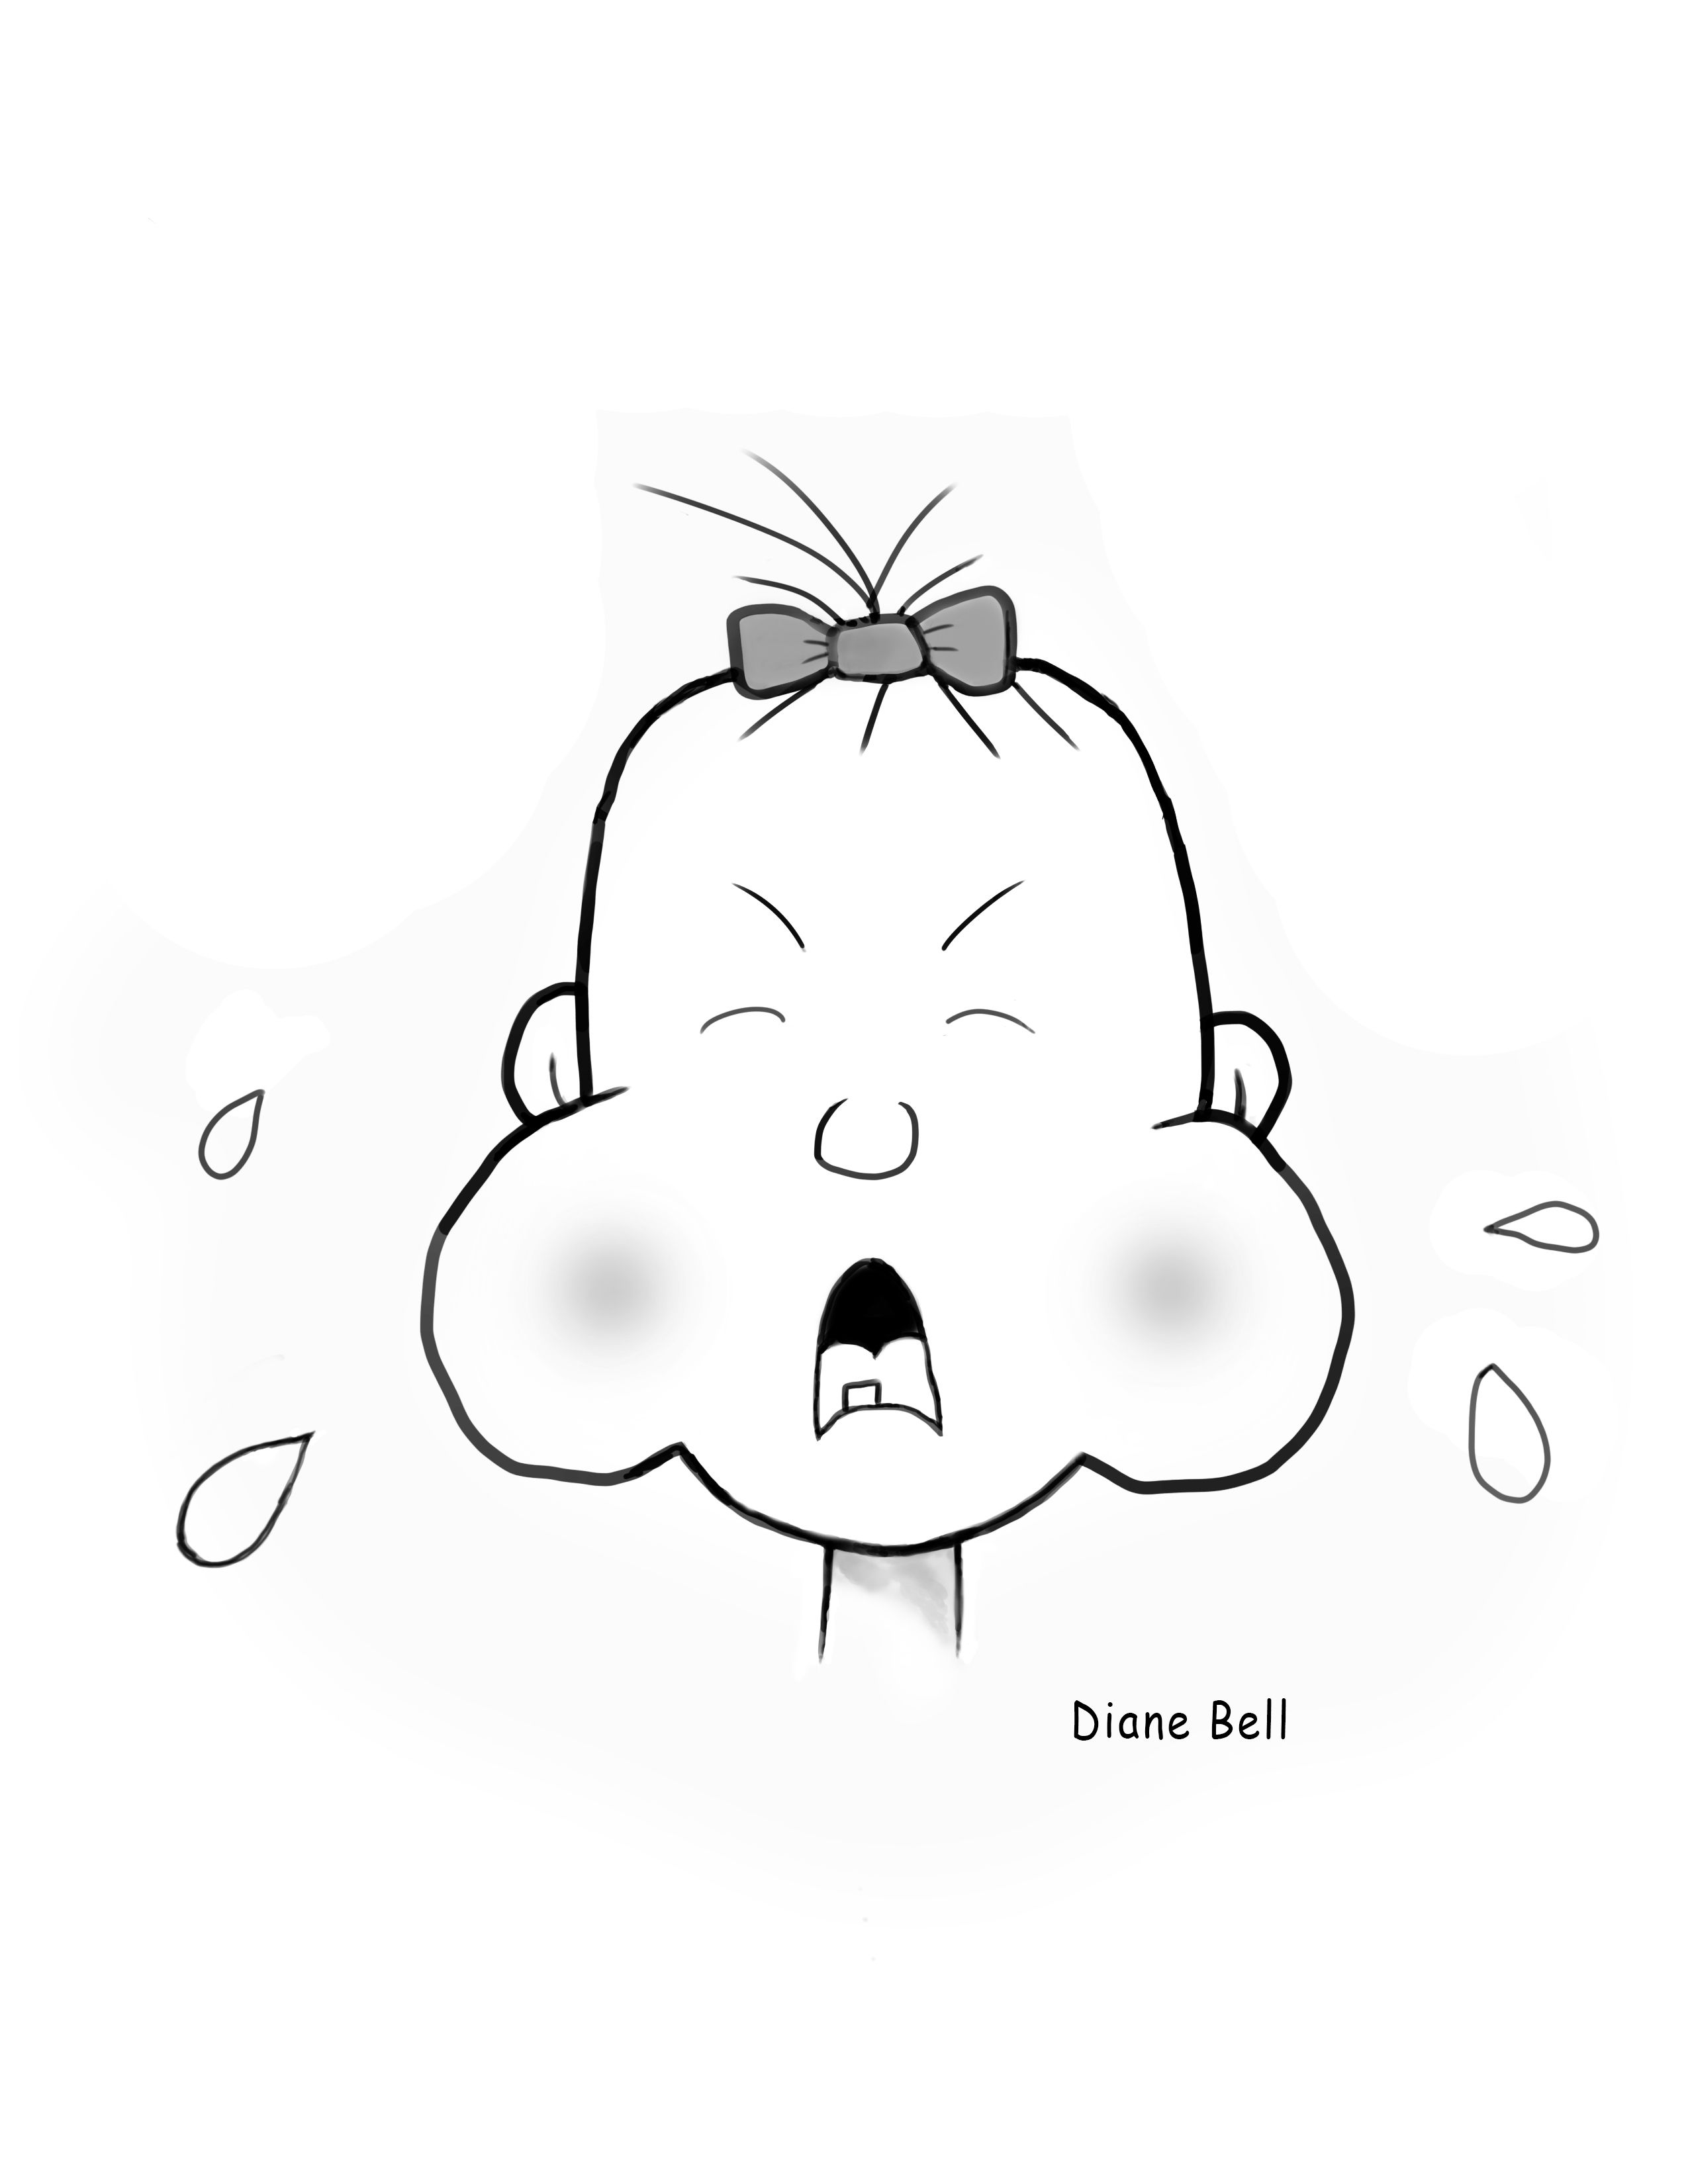 Black And White Drawing Of A Cartoon Baby Crying Funny Cartoon